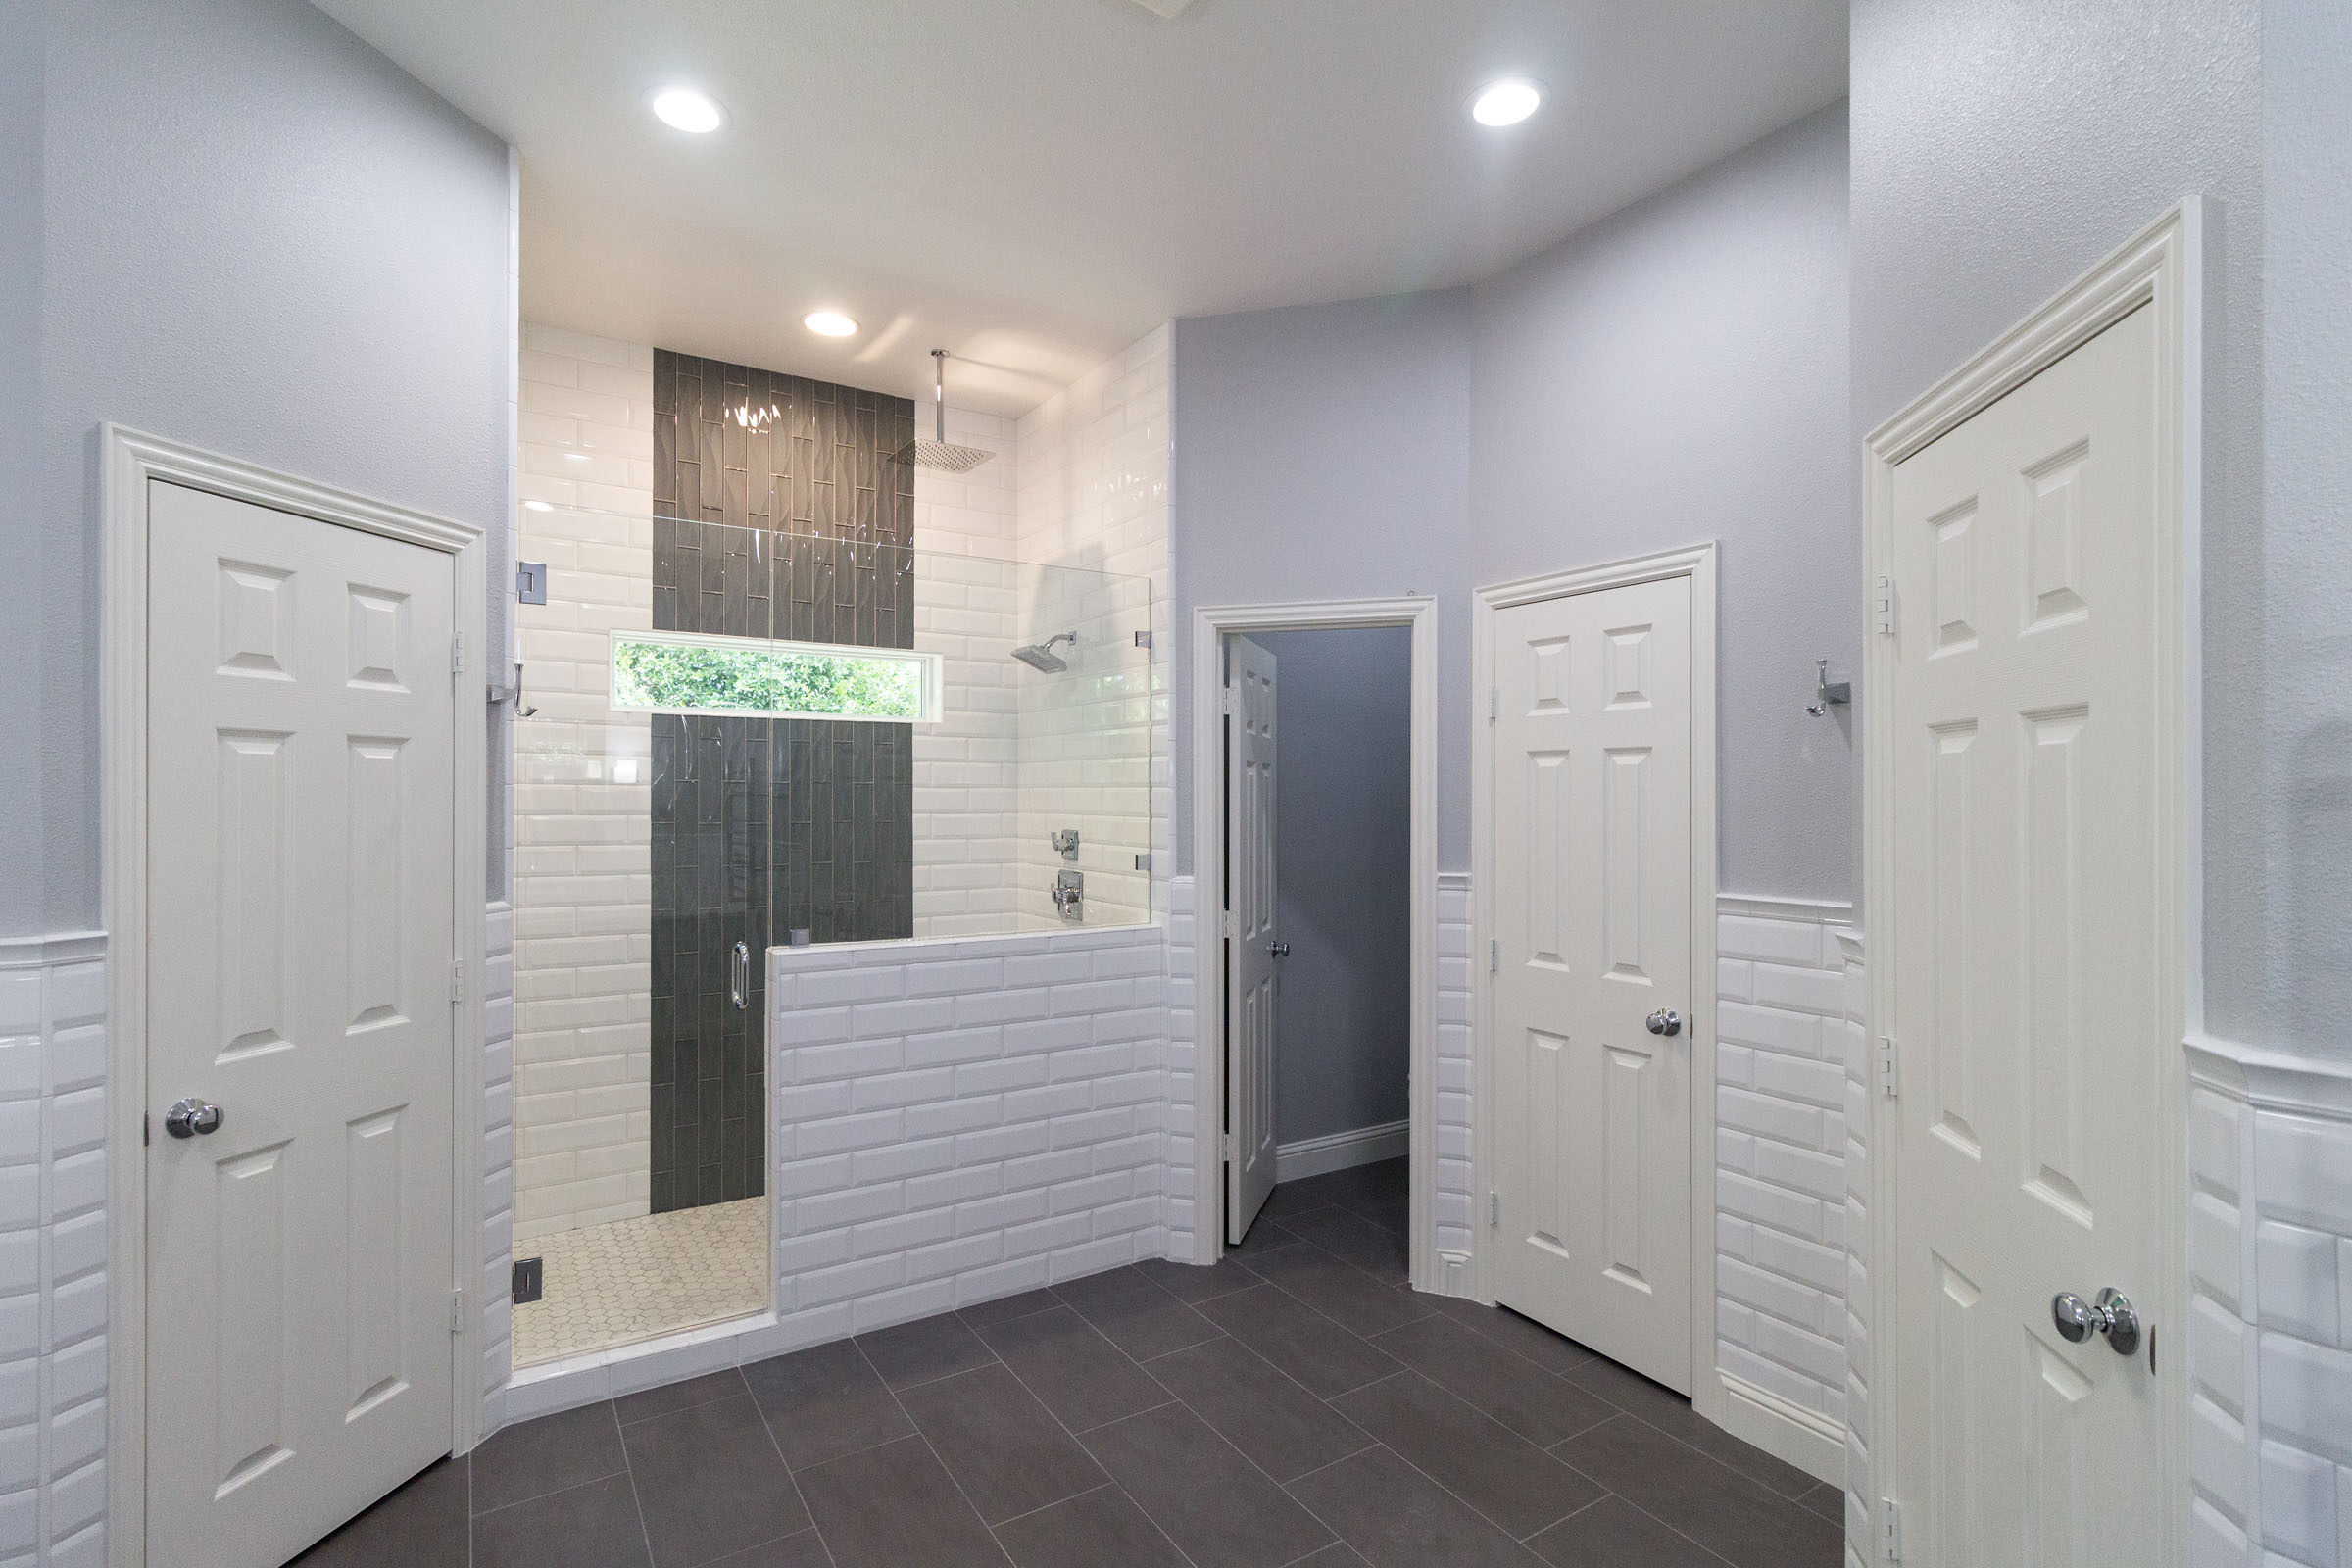 Bathroom remodel with white subway tile, dark grey flooring, walk in shower, open concept